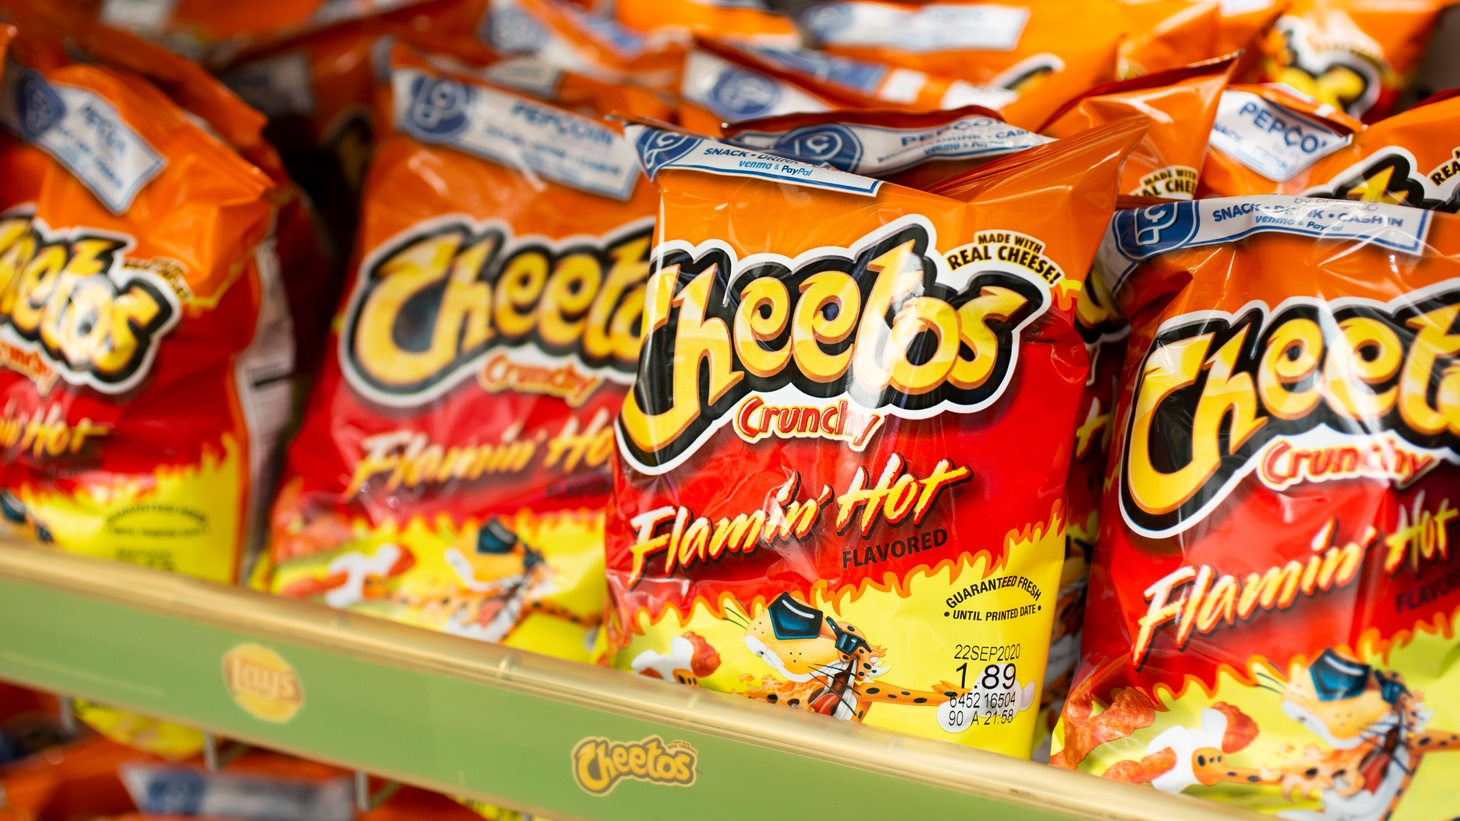 Richard Montañez climbed the ranks at Frito-Lay, and after retiring, he pushed out the story that he developed Flamin' Hot Cheetos. But it turns out that the product was based on a regional hot chip found in inner-city mini markets across Chicago and Detroit, says LA Times reporter Sam Dean.